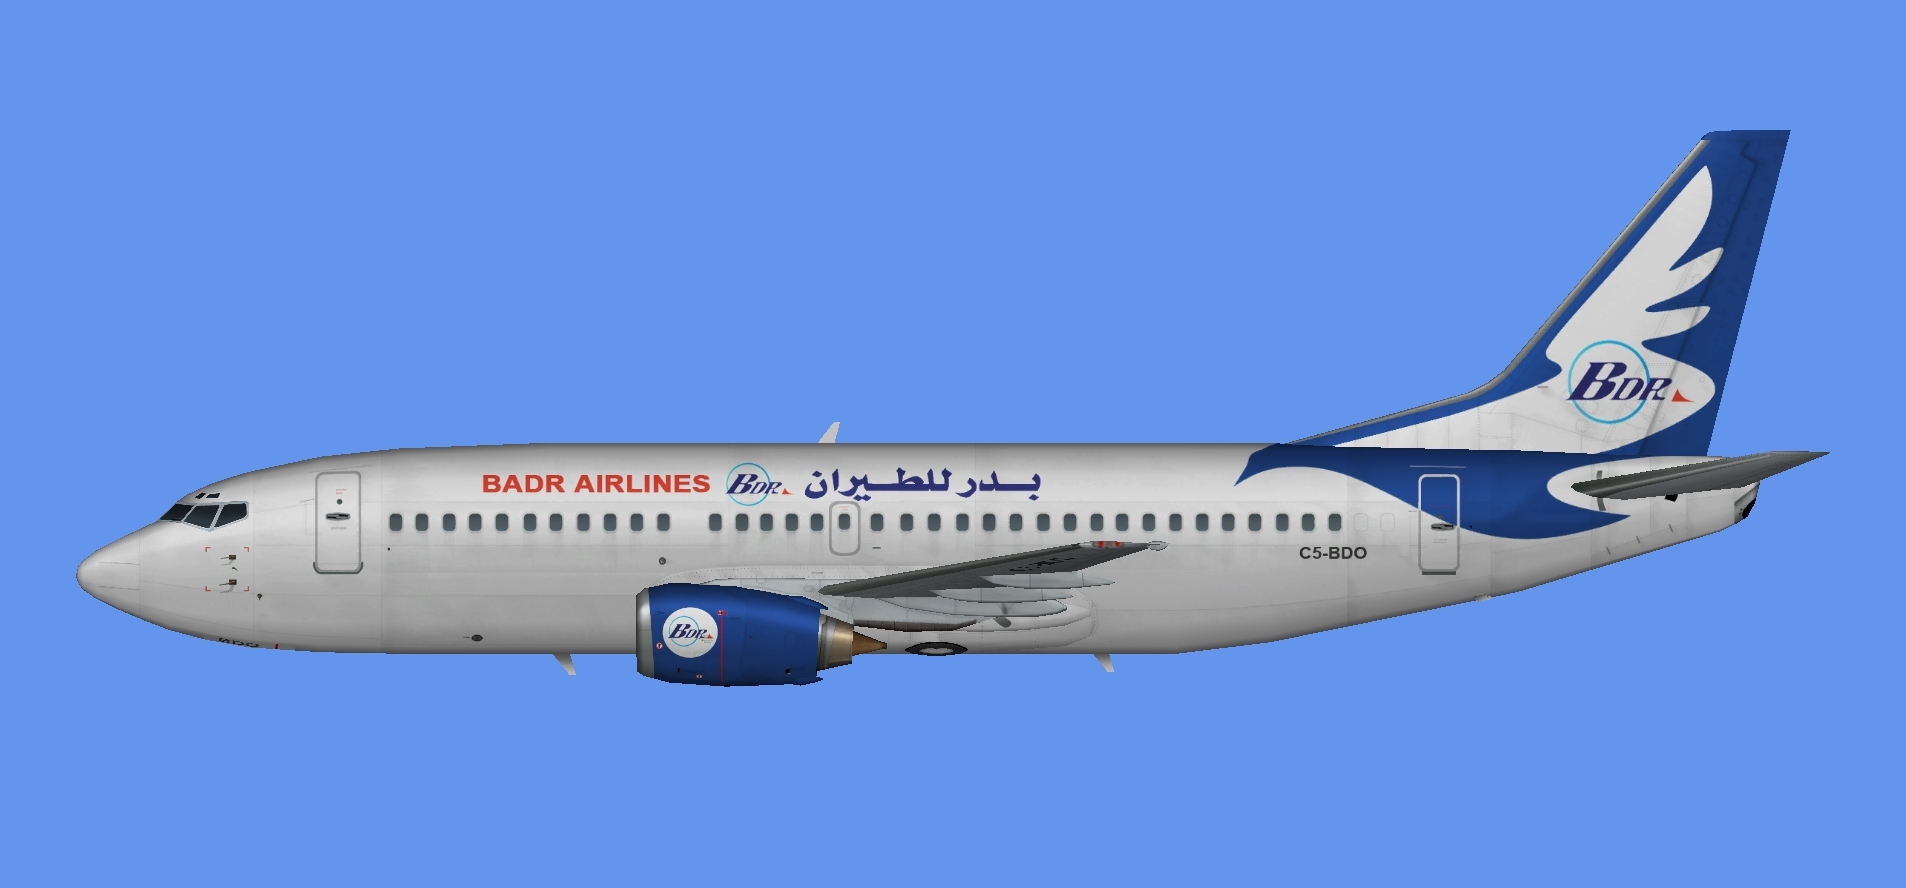 Badr Airlines Boeing 737-300